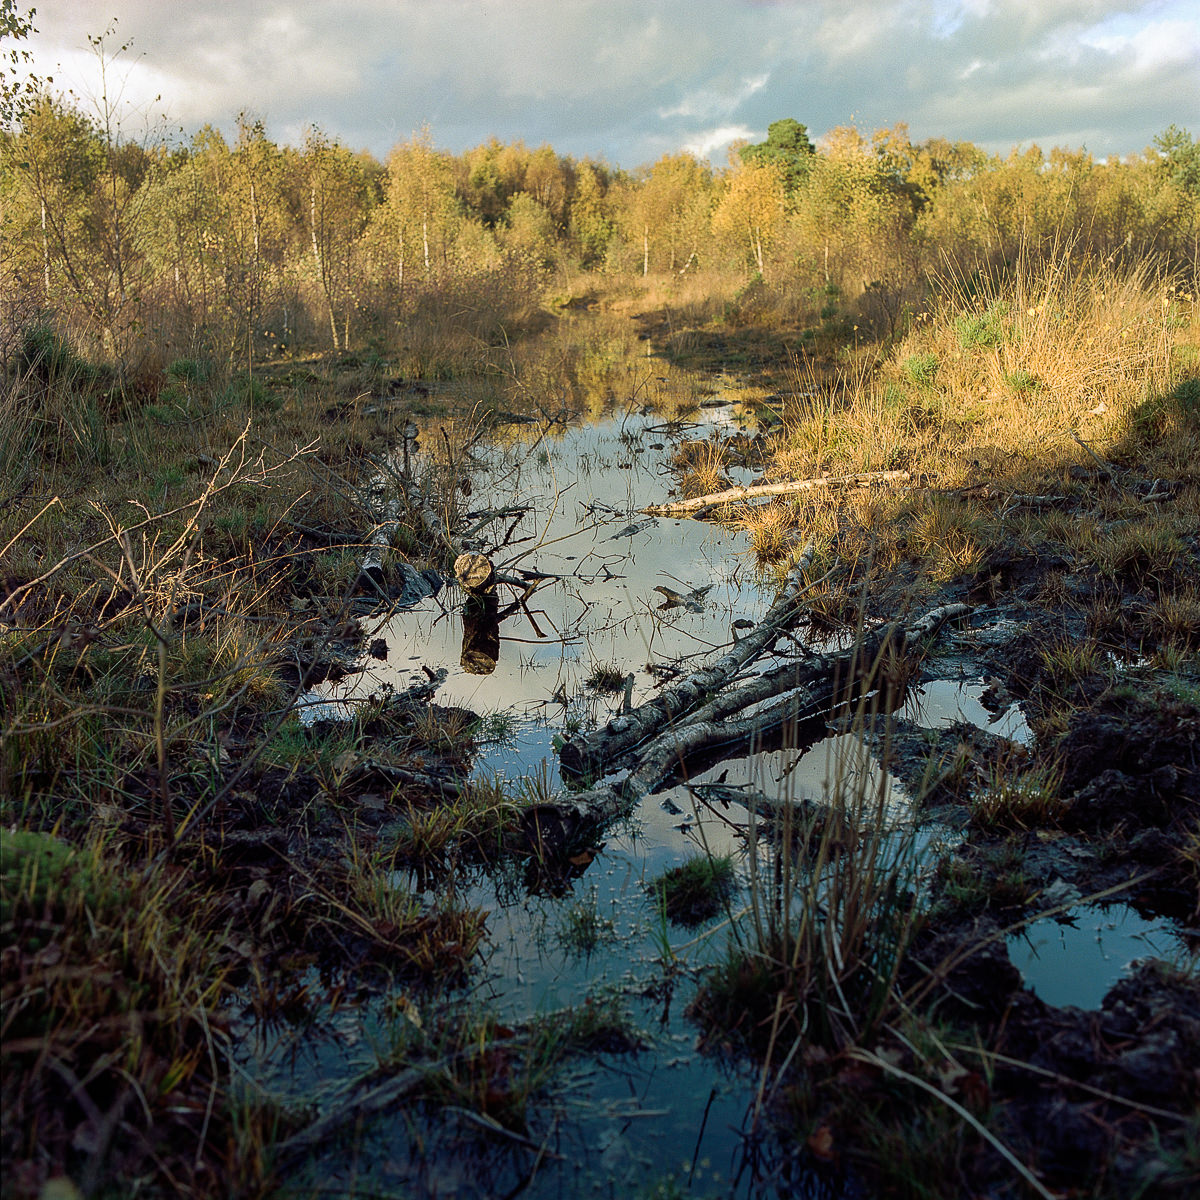 Contemporary Landscape Photography - Skipwith Common